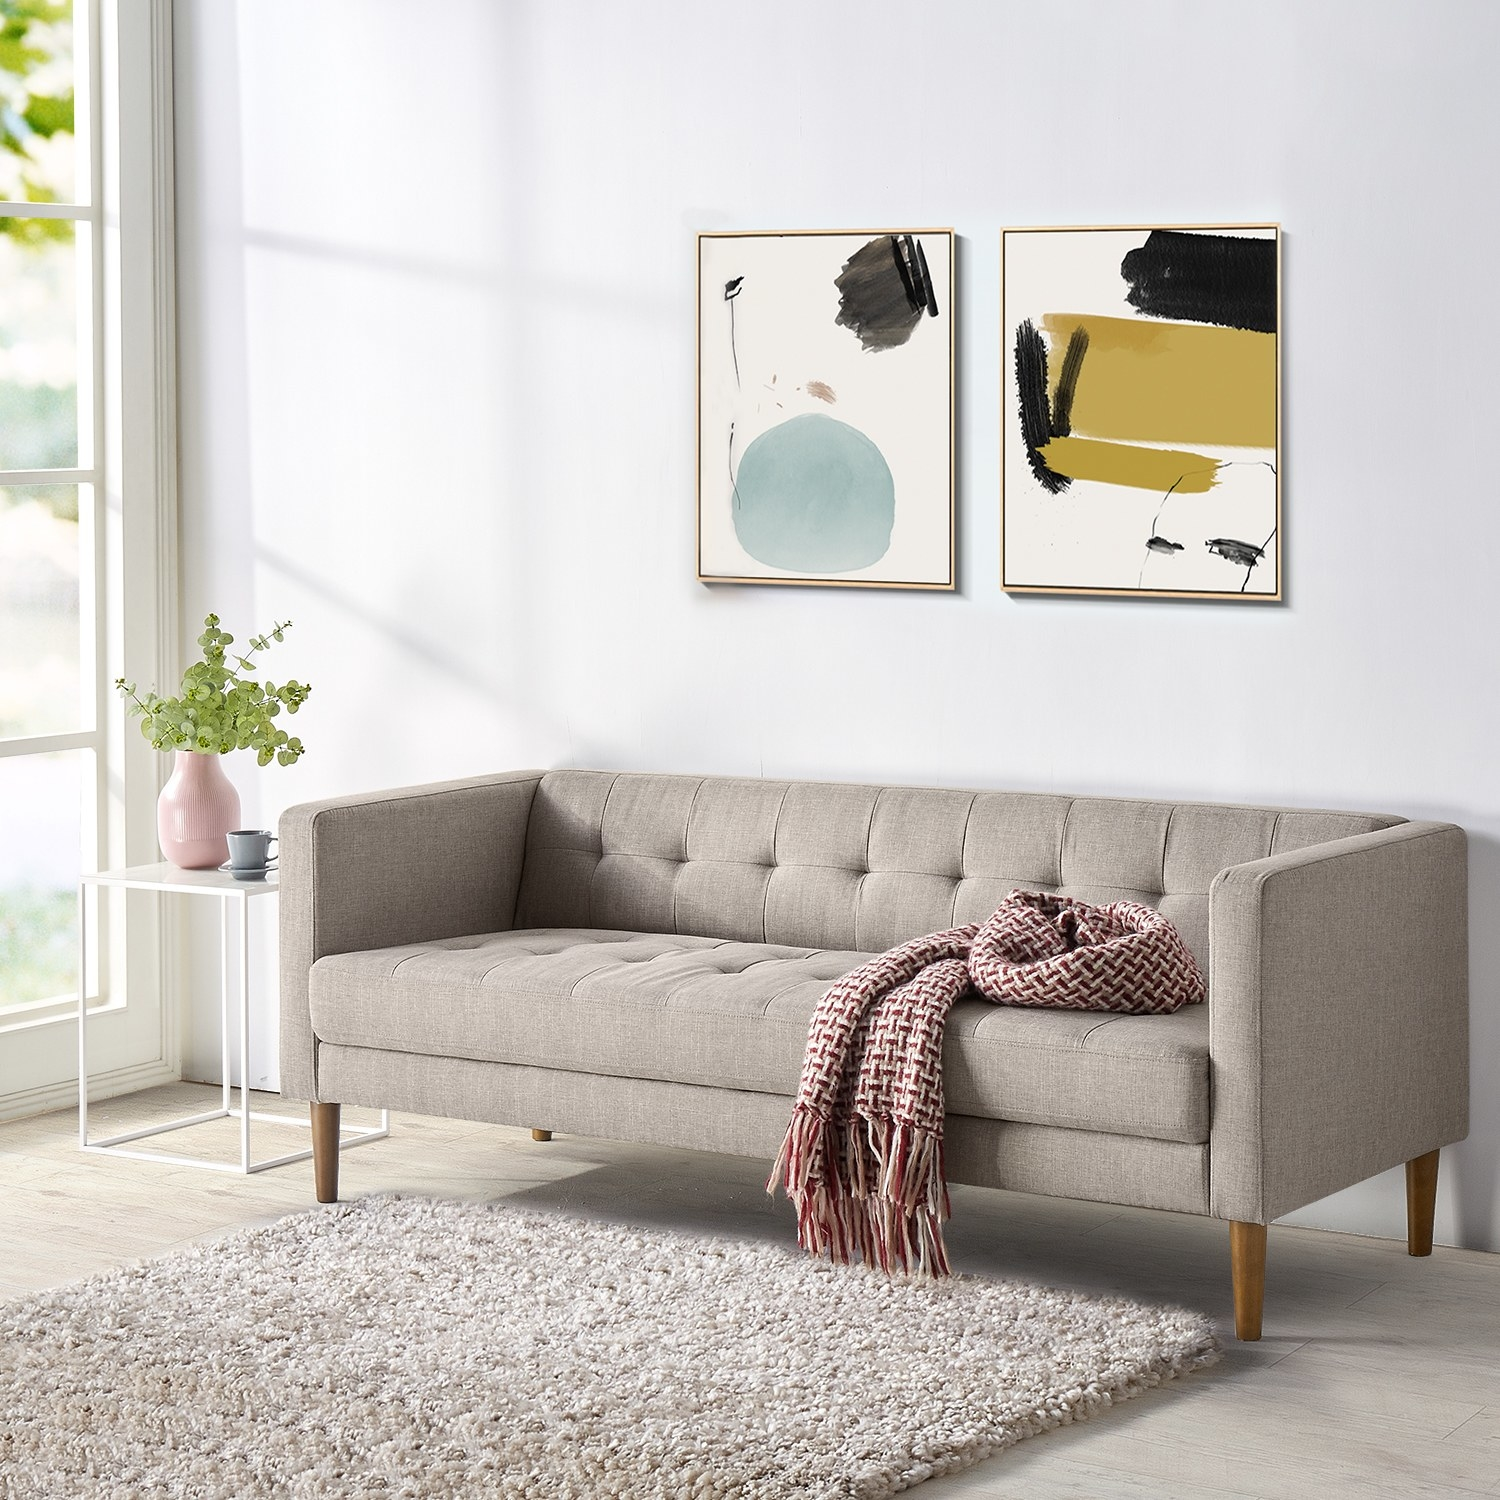 The low oatmeal-colored couch with button-tufting on the seat and back cushion as well as wooden legs